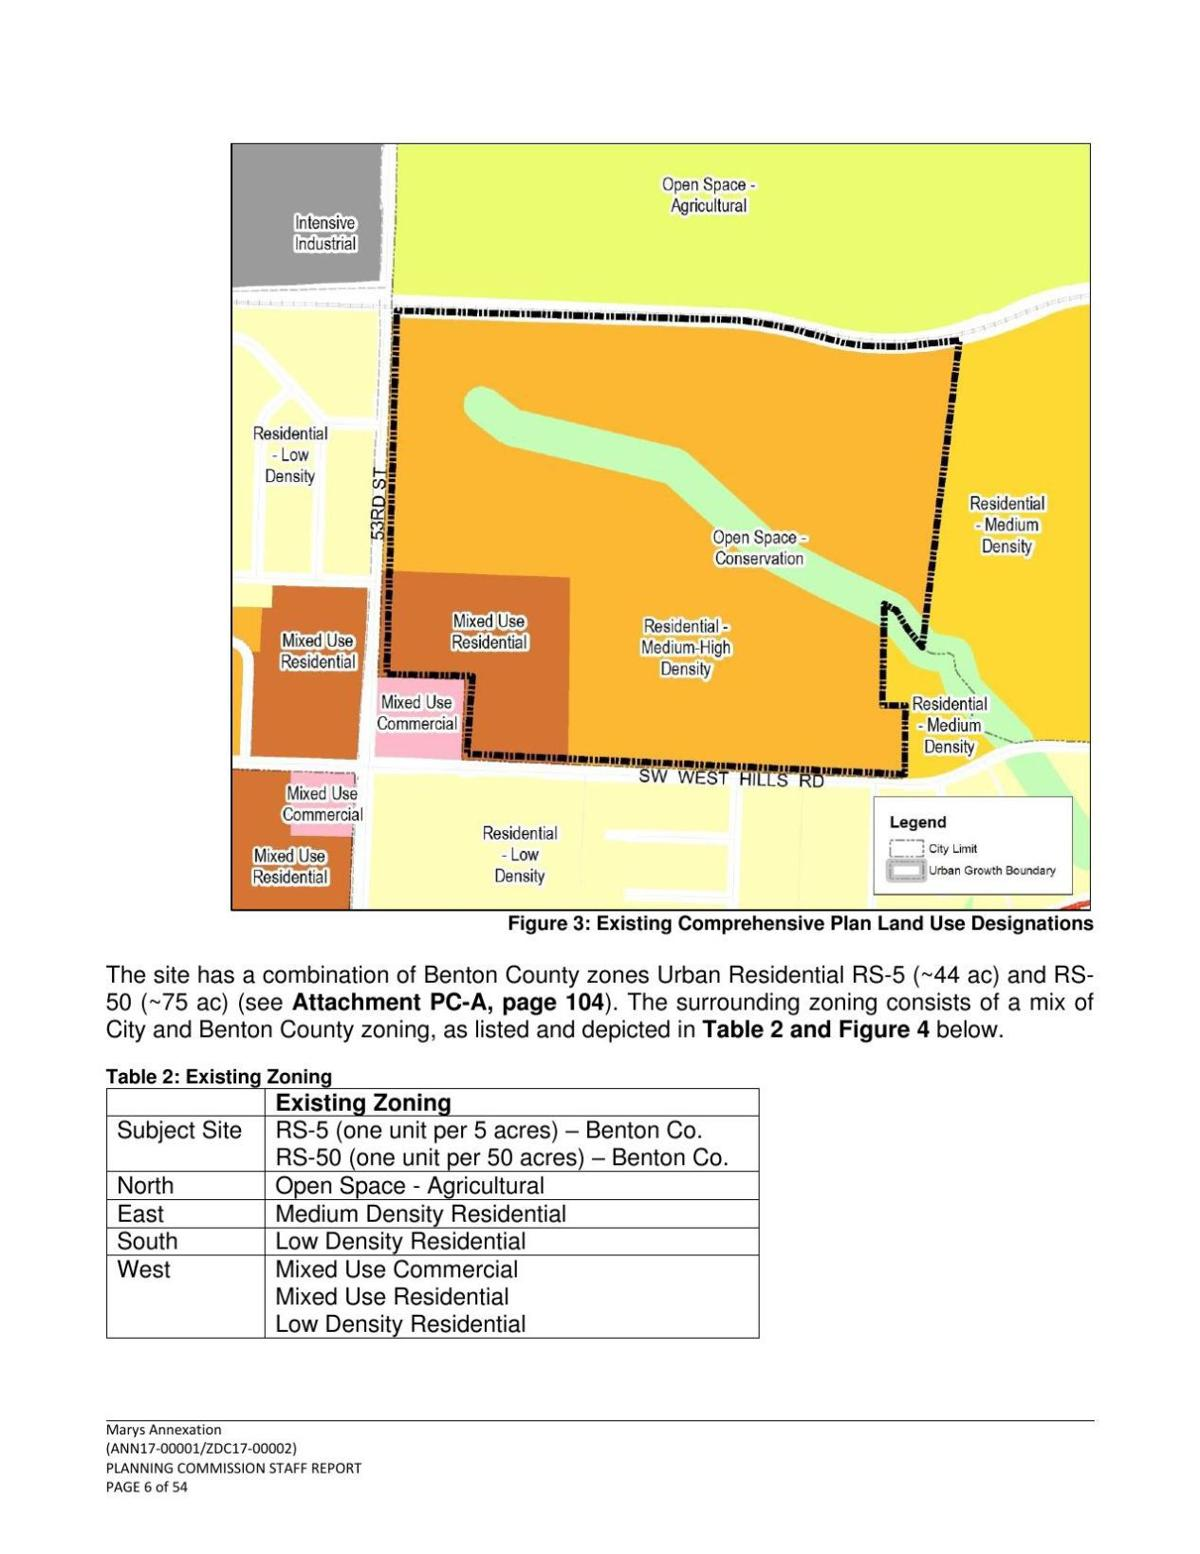 marys-annexation-map-05